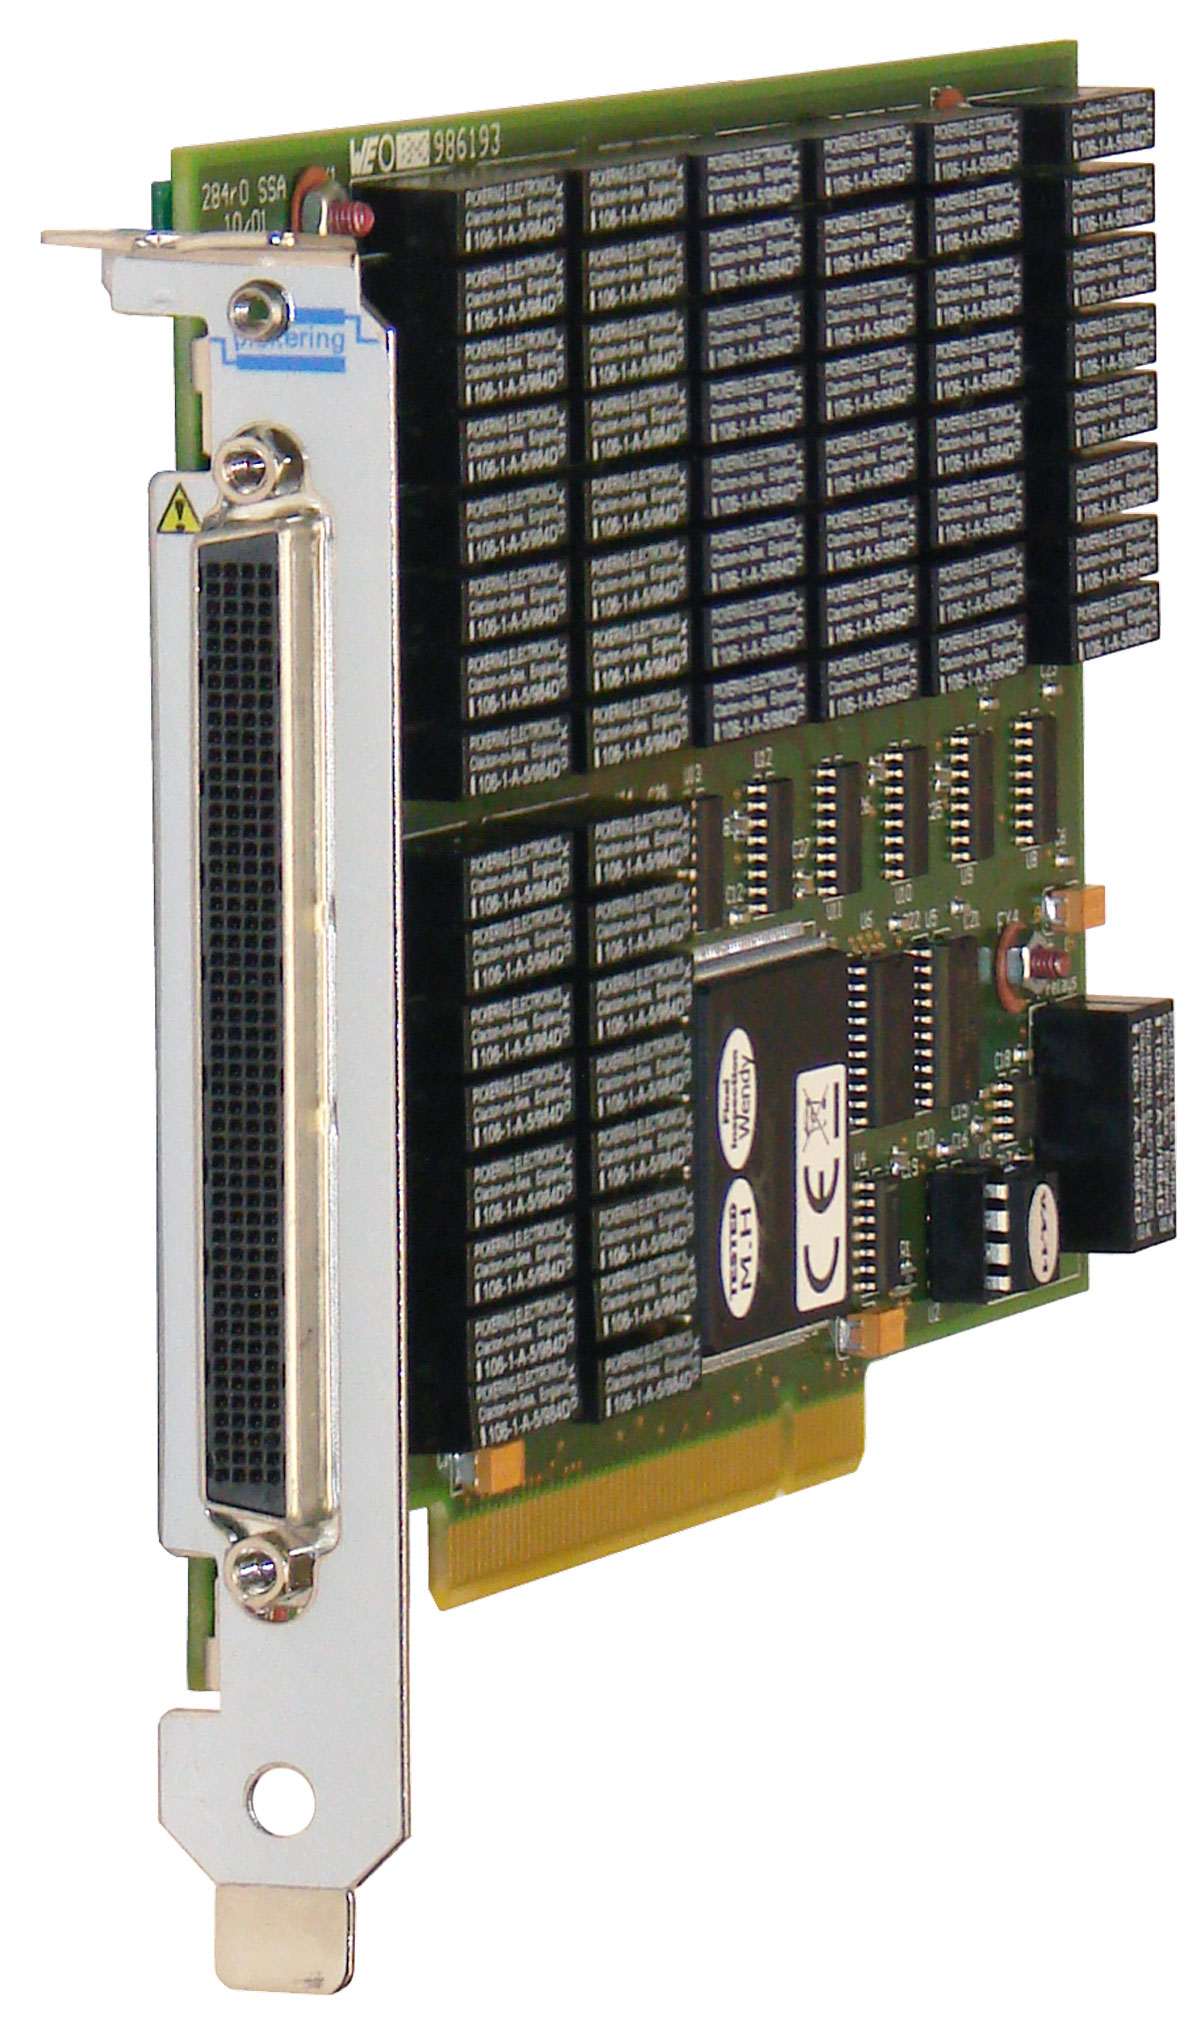 PCI XSPDT Reed Relay Card - Reed relay normally open